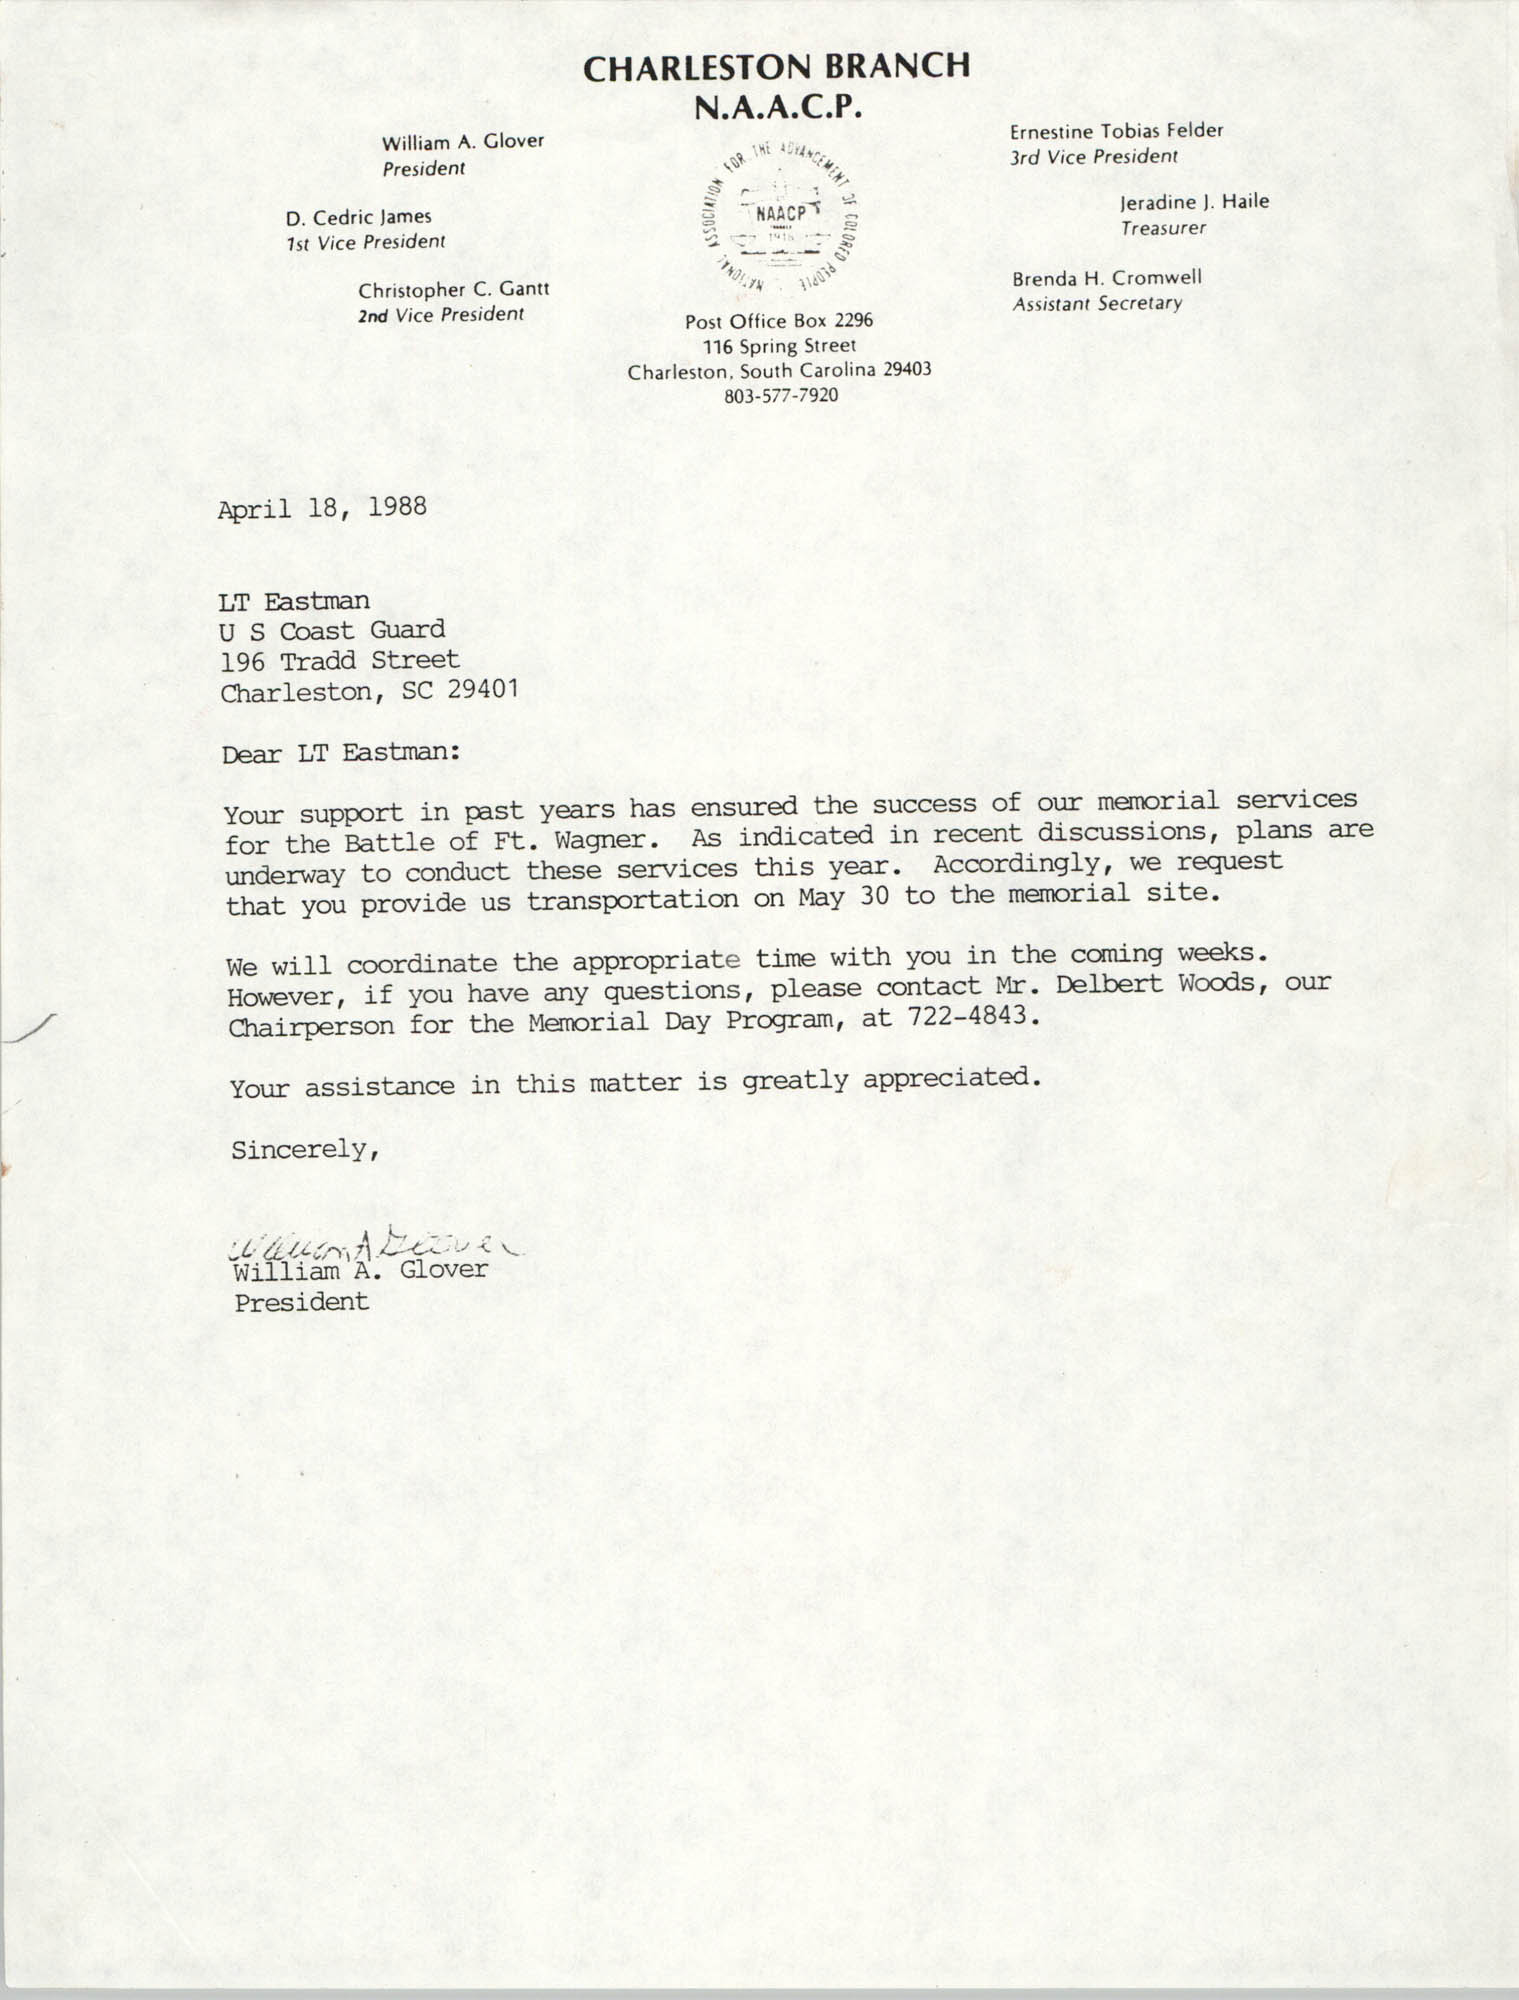 Letter from William A. Glover to LT Eastman, April 18, 1988